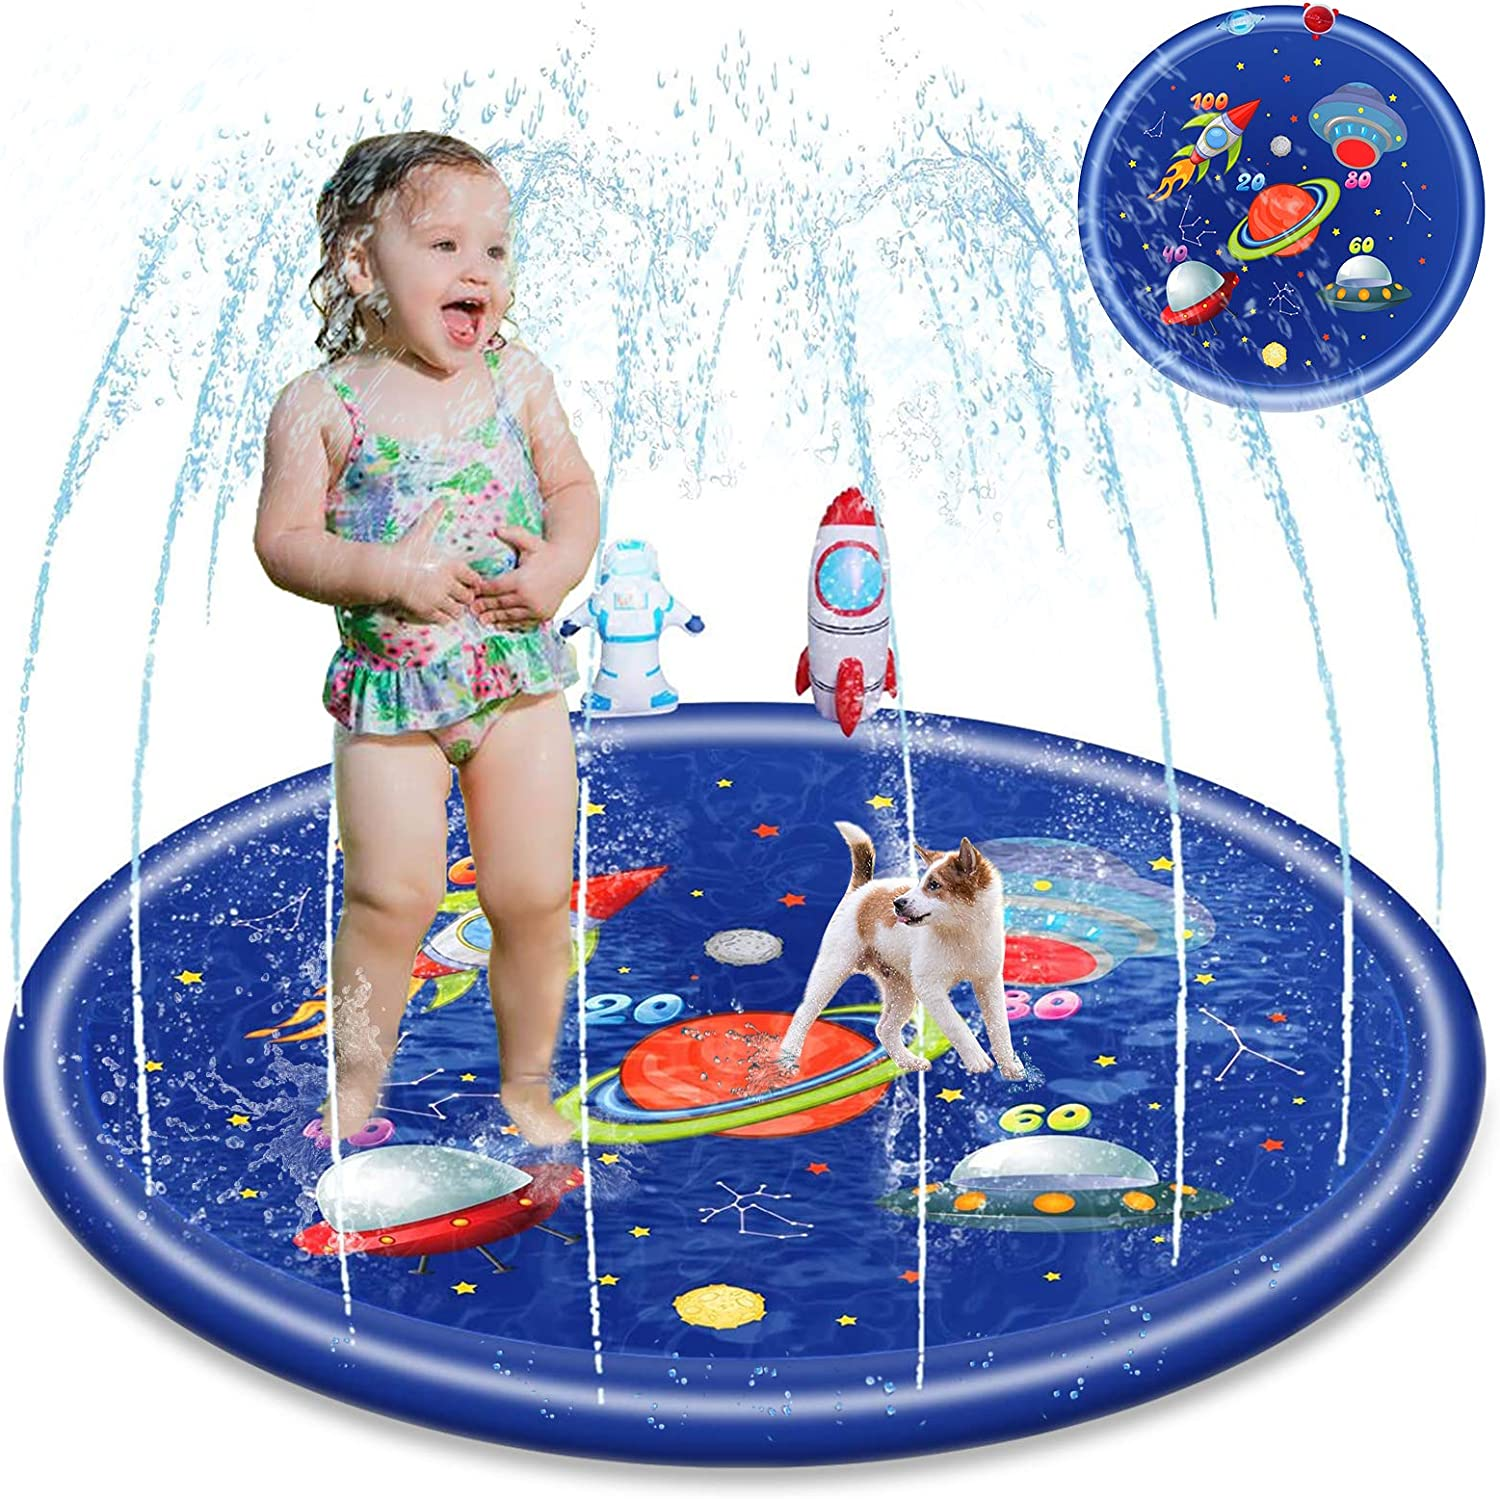 Splash Pad Credence for Kids Toddler Baby 68inch Toy Sprinkler Summer Out Columbus Mall